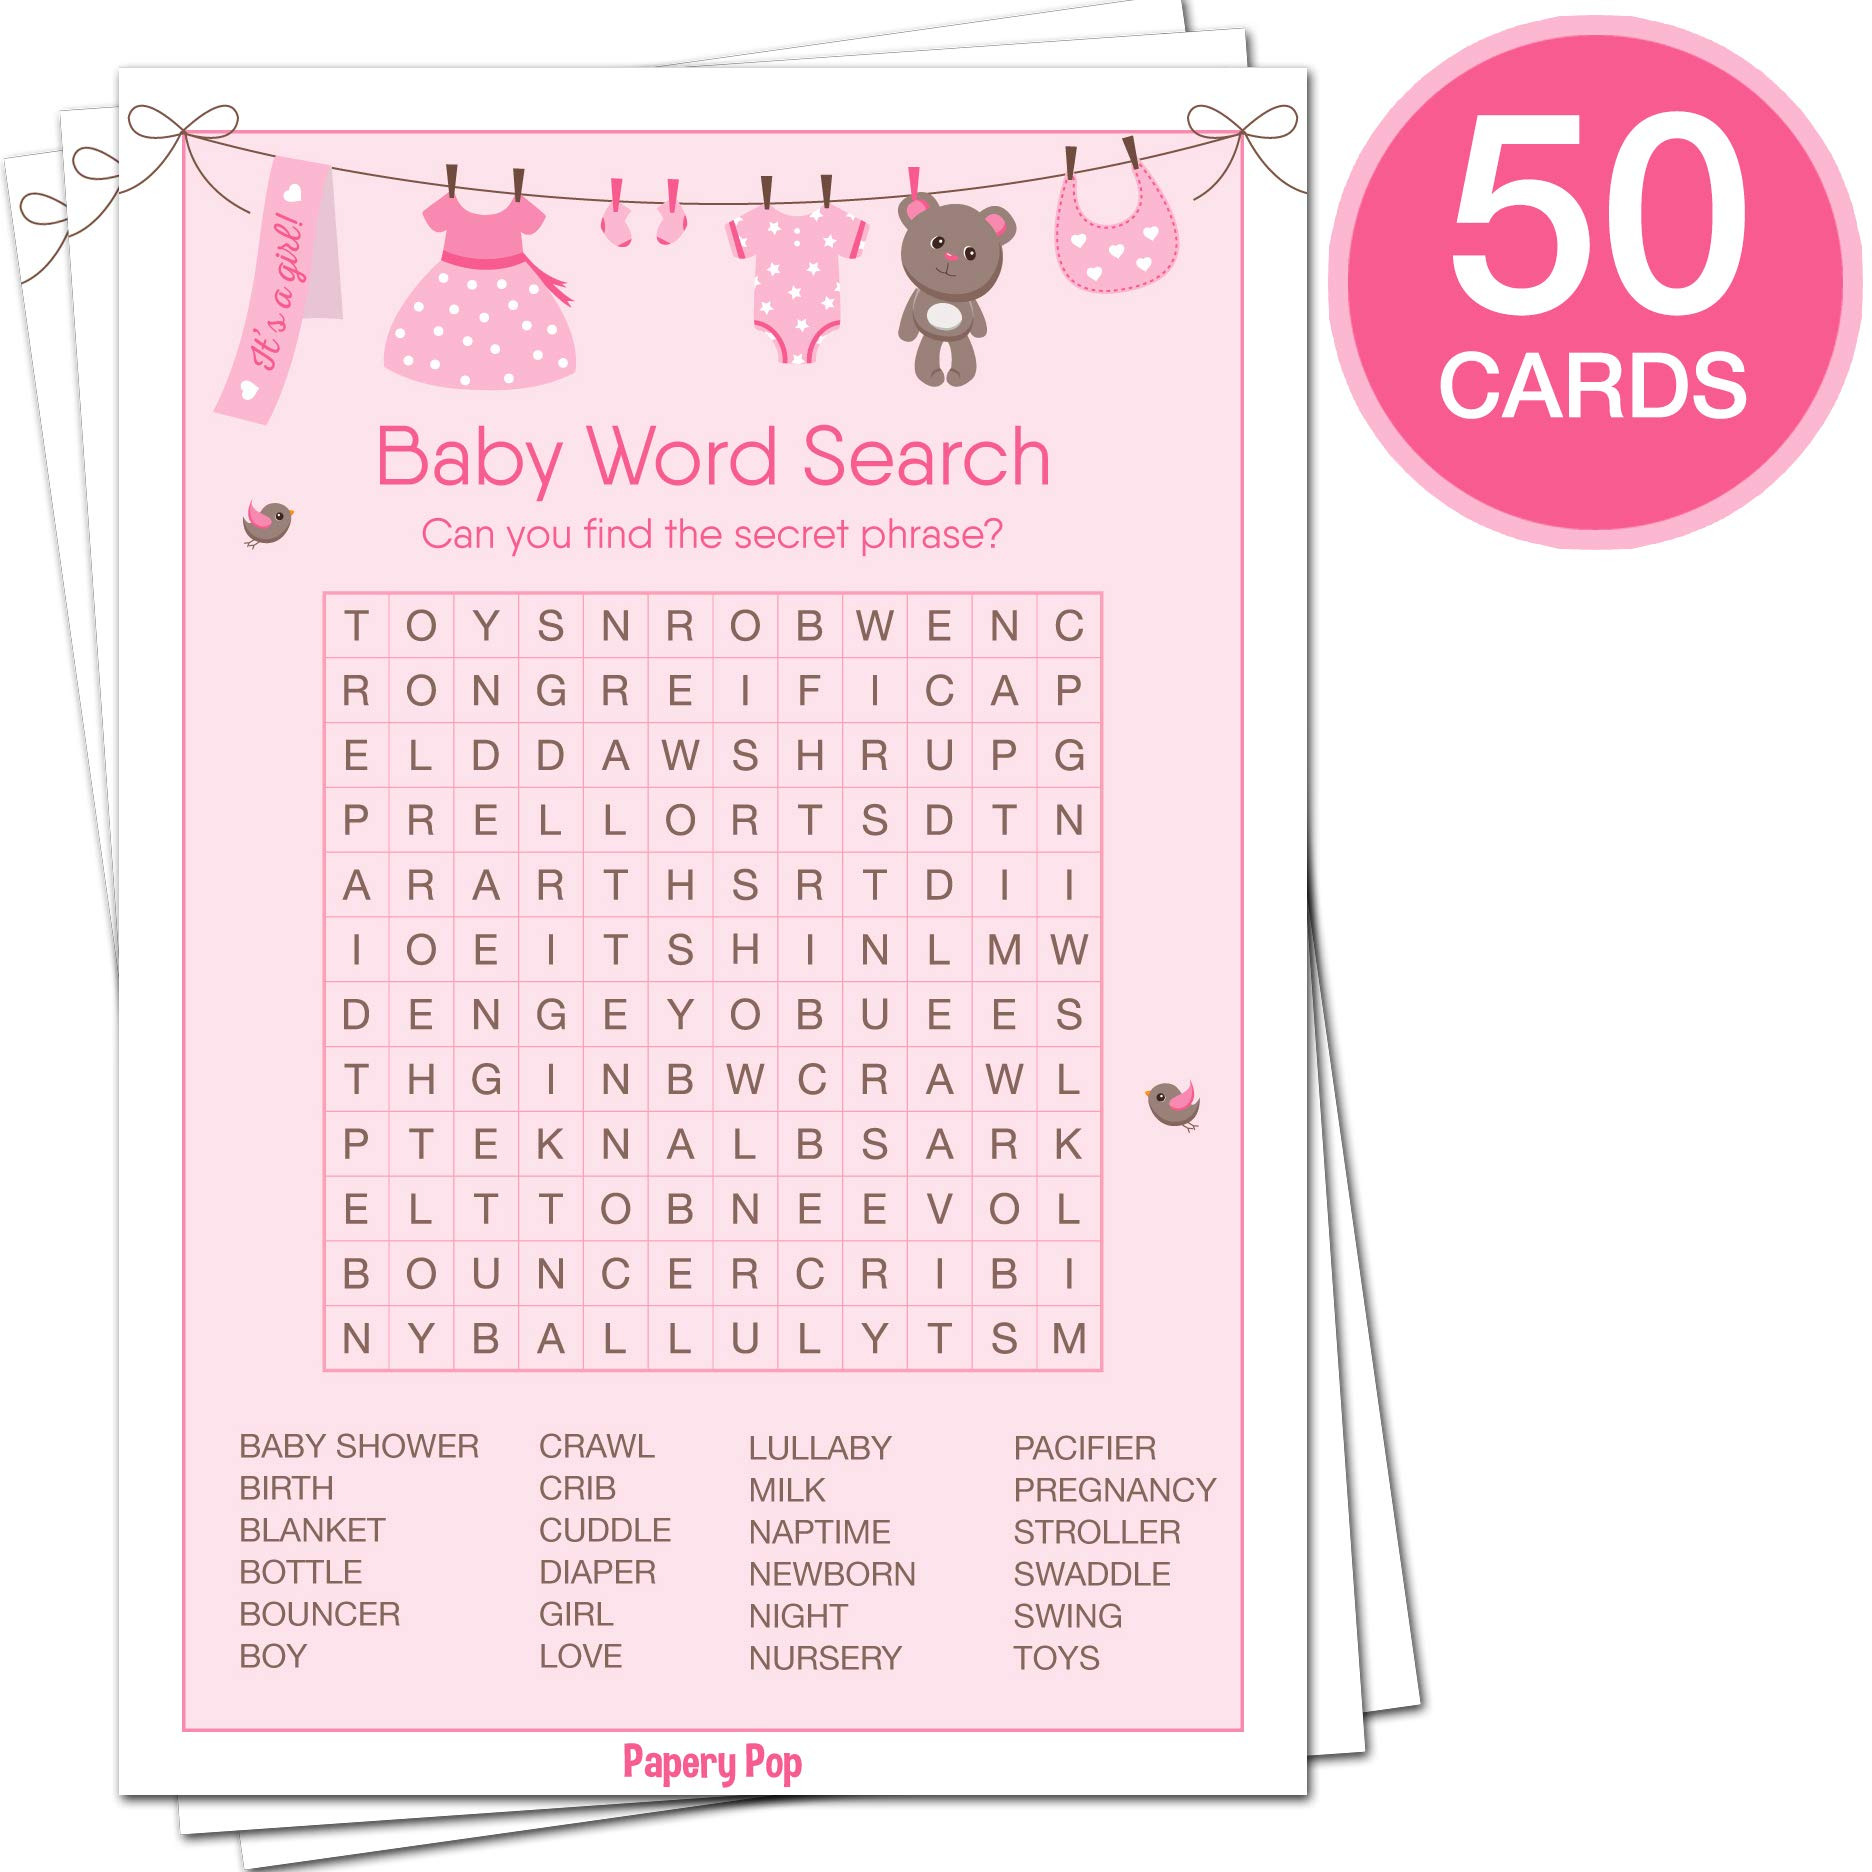 Baby Shower Games for Girls - Set of 5 Activities - (50 Cards Each, 250 Total) - Baby Shower Supplies by Papery Pop (Image #6)